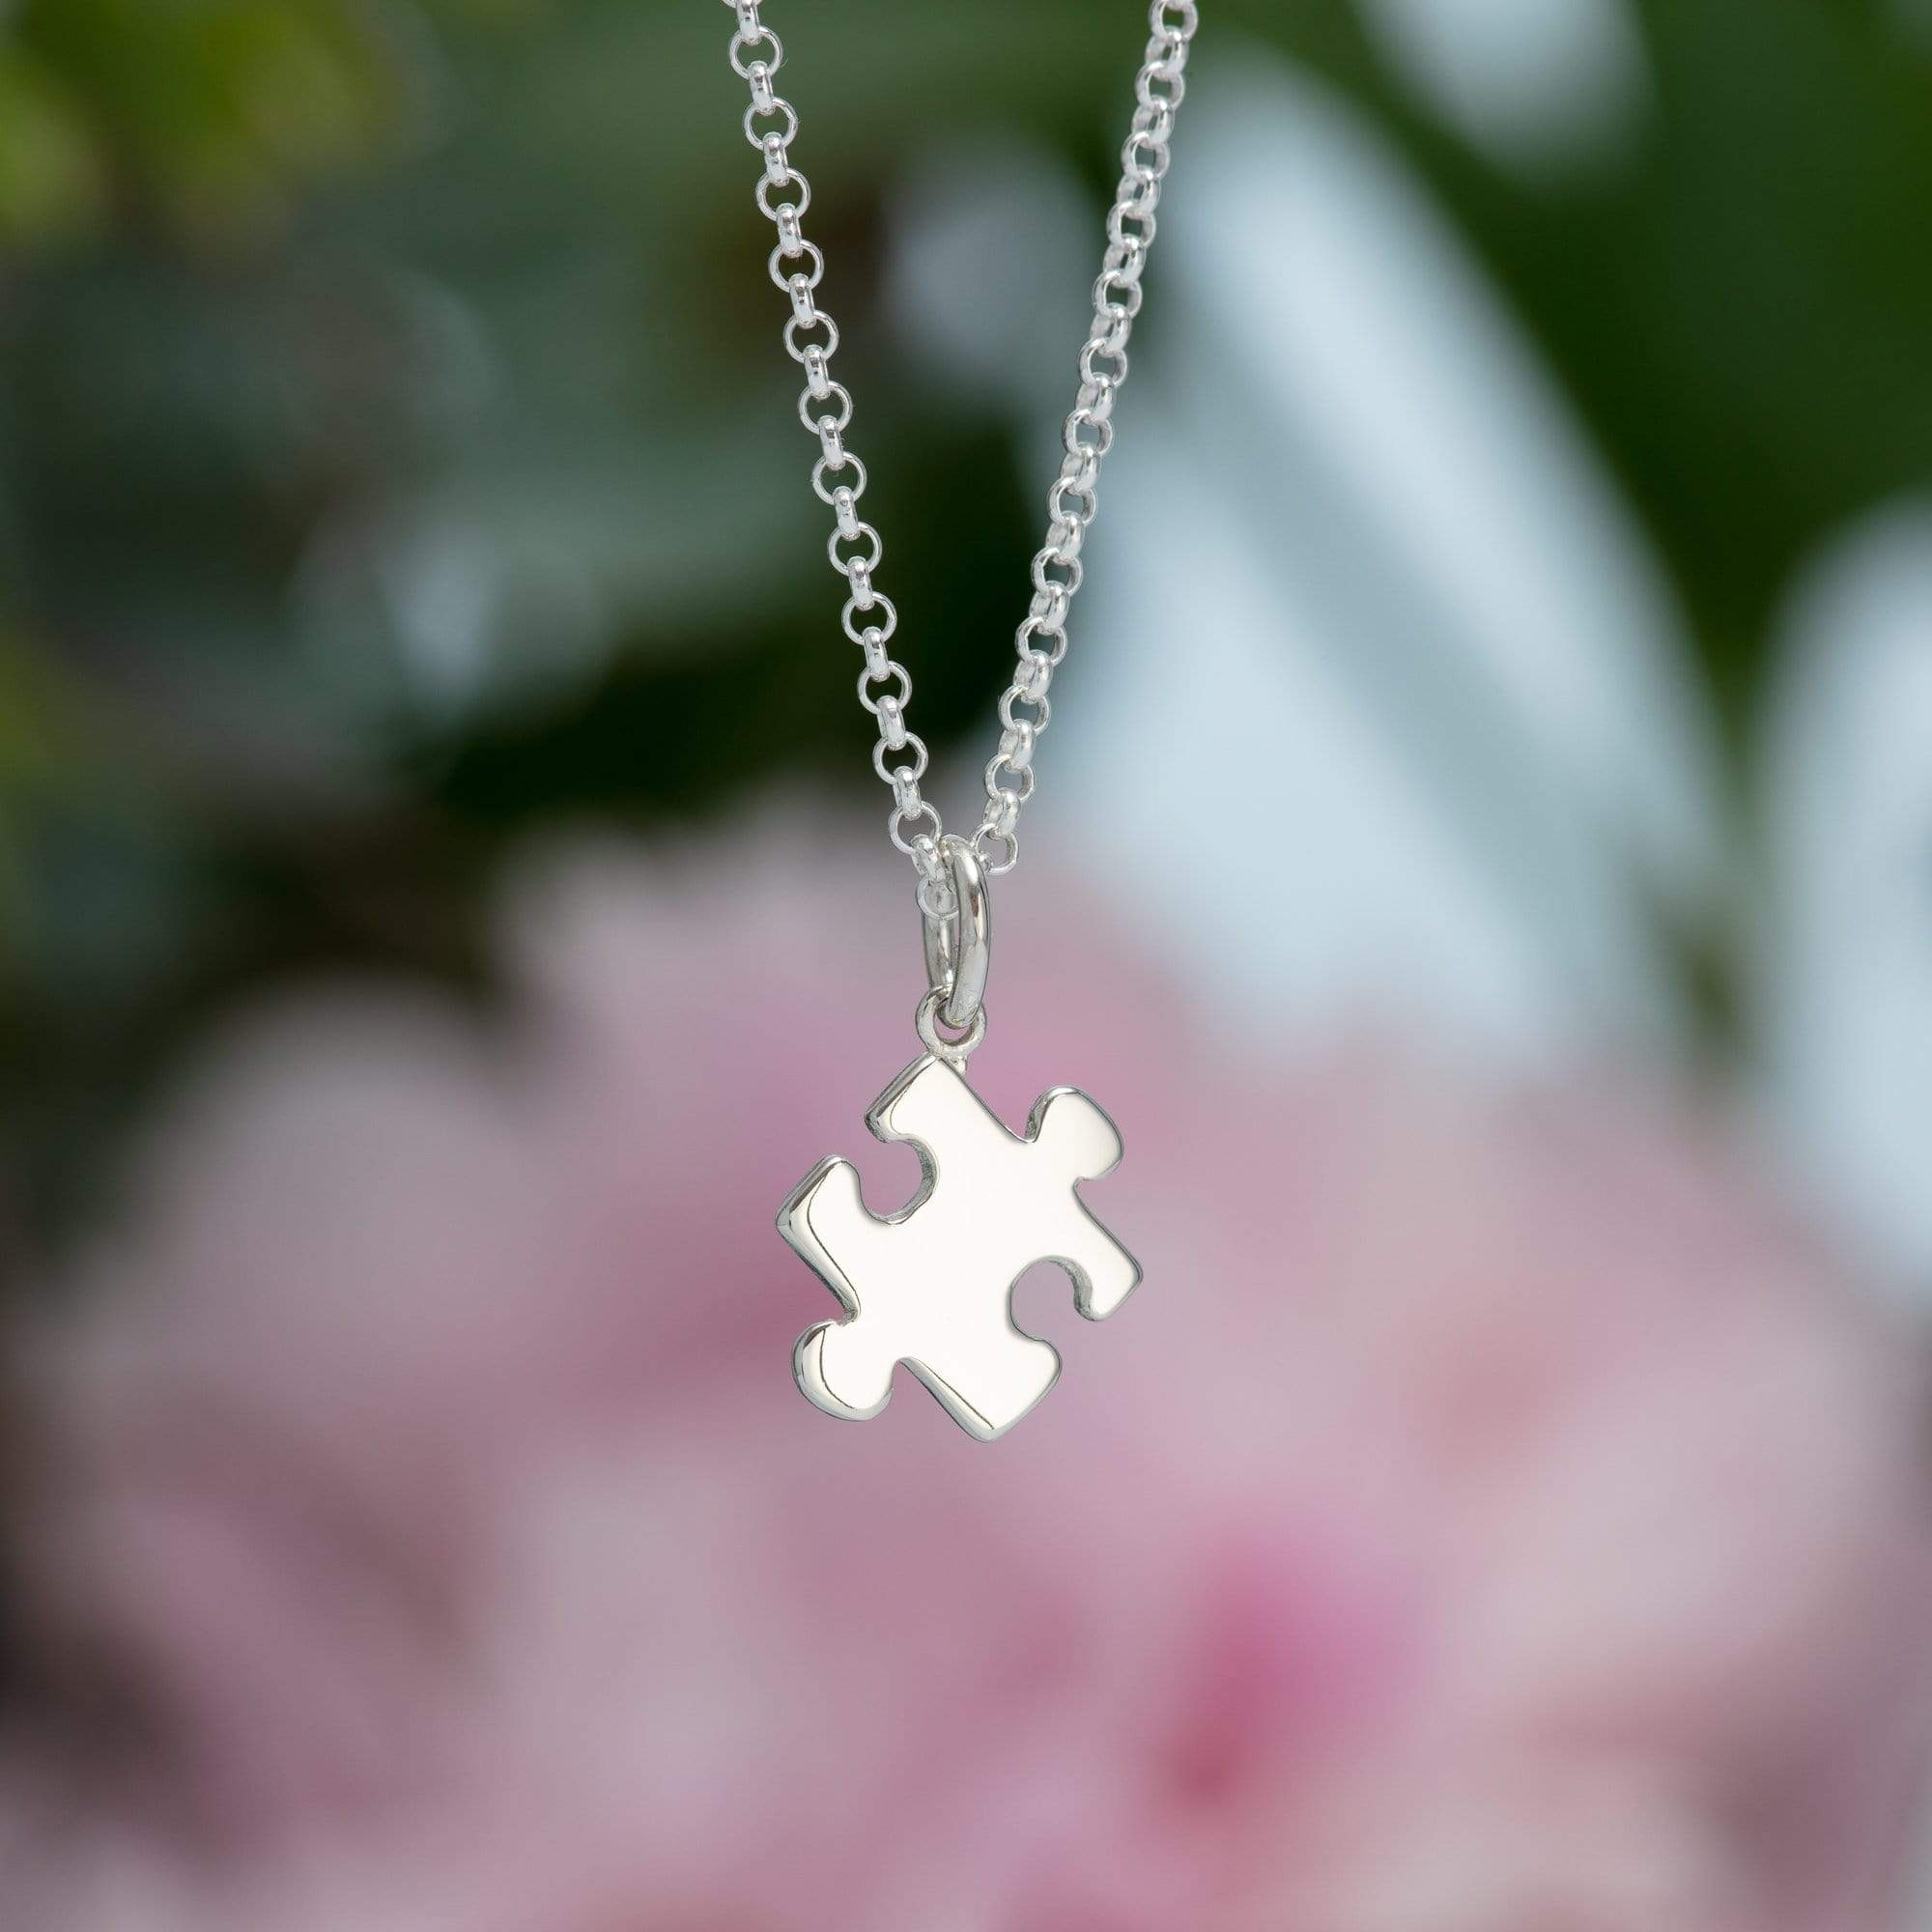 Personalised Silver Jigsaw Necklace - Lily Charmed